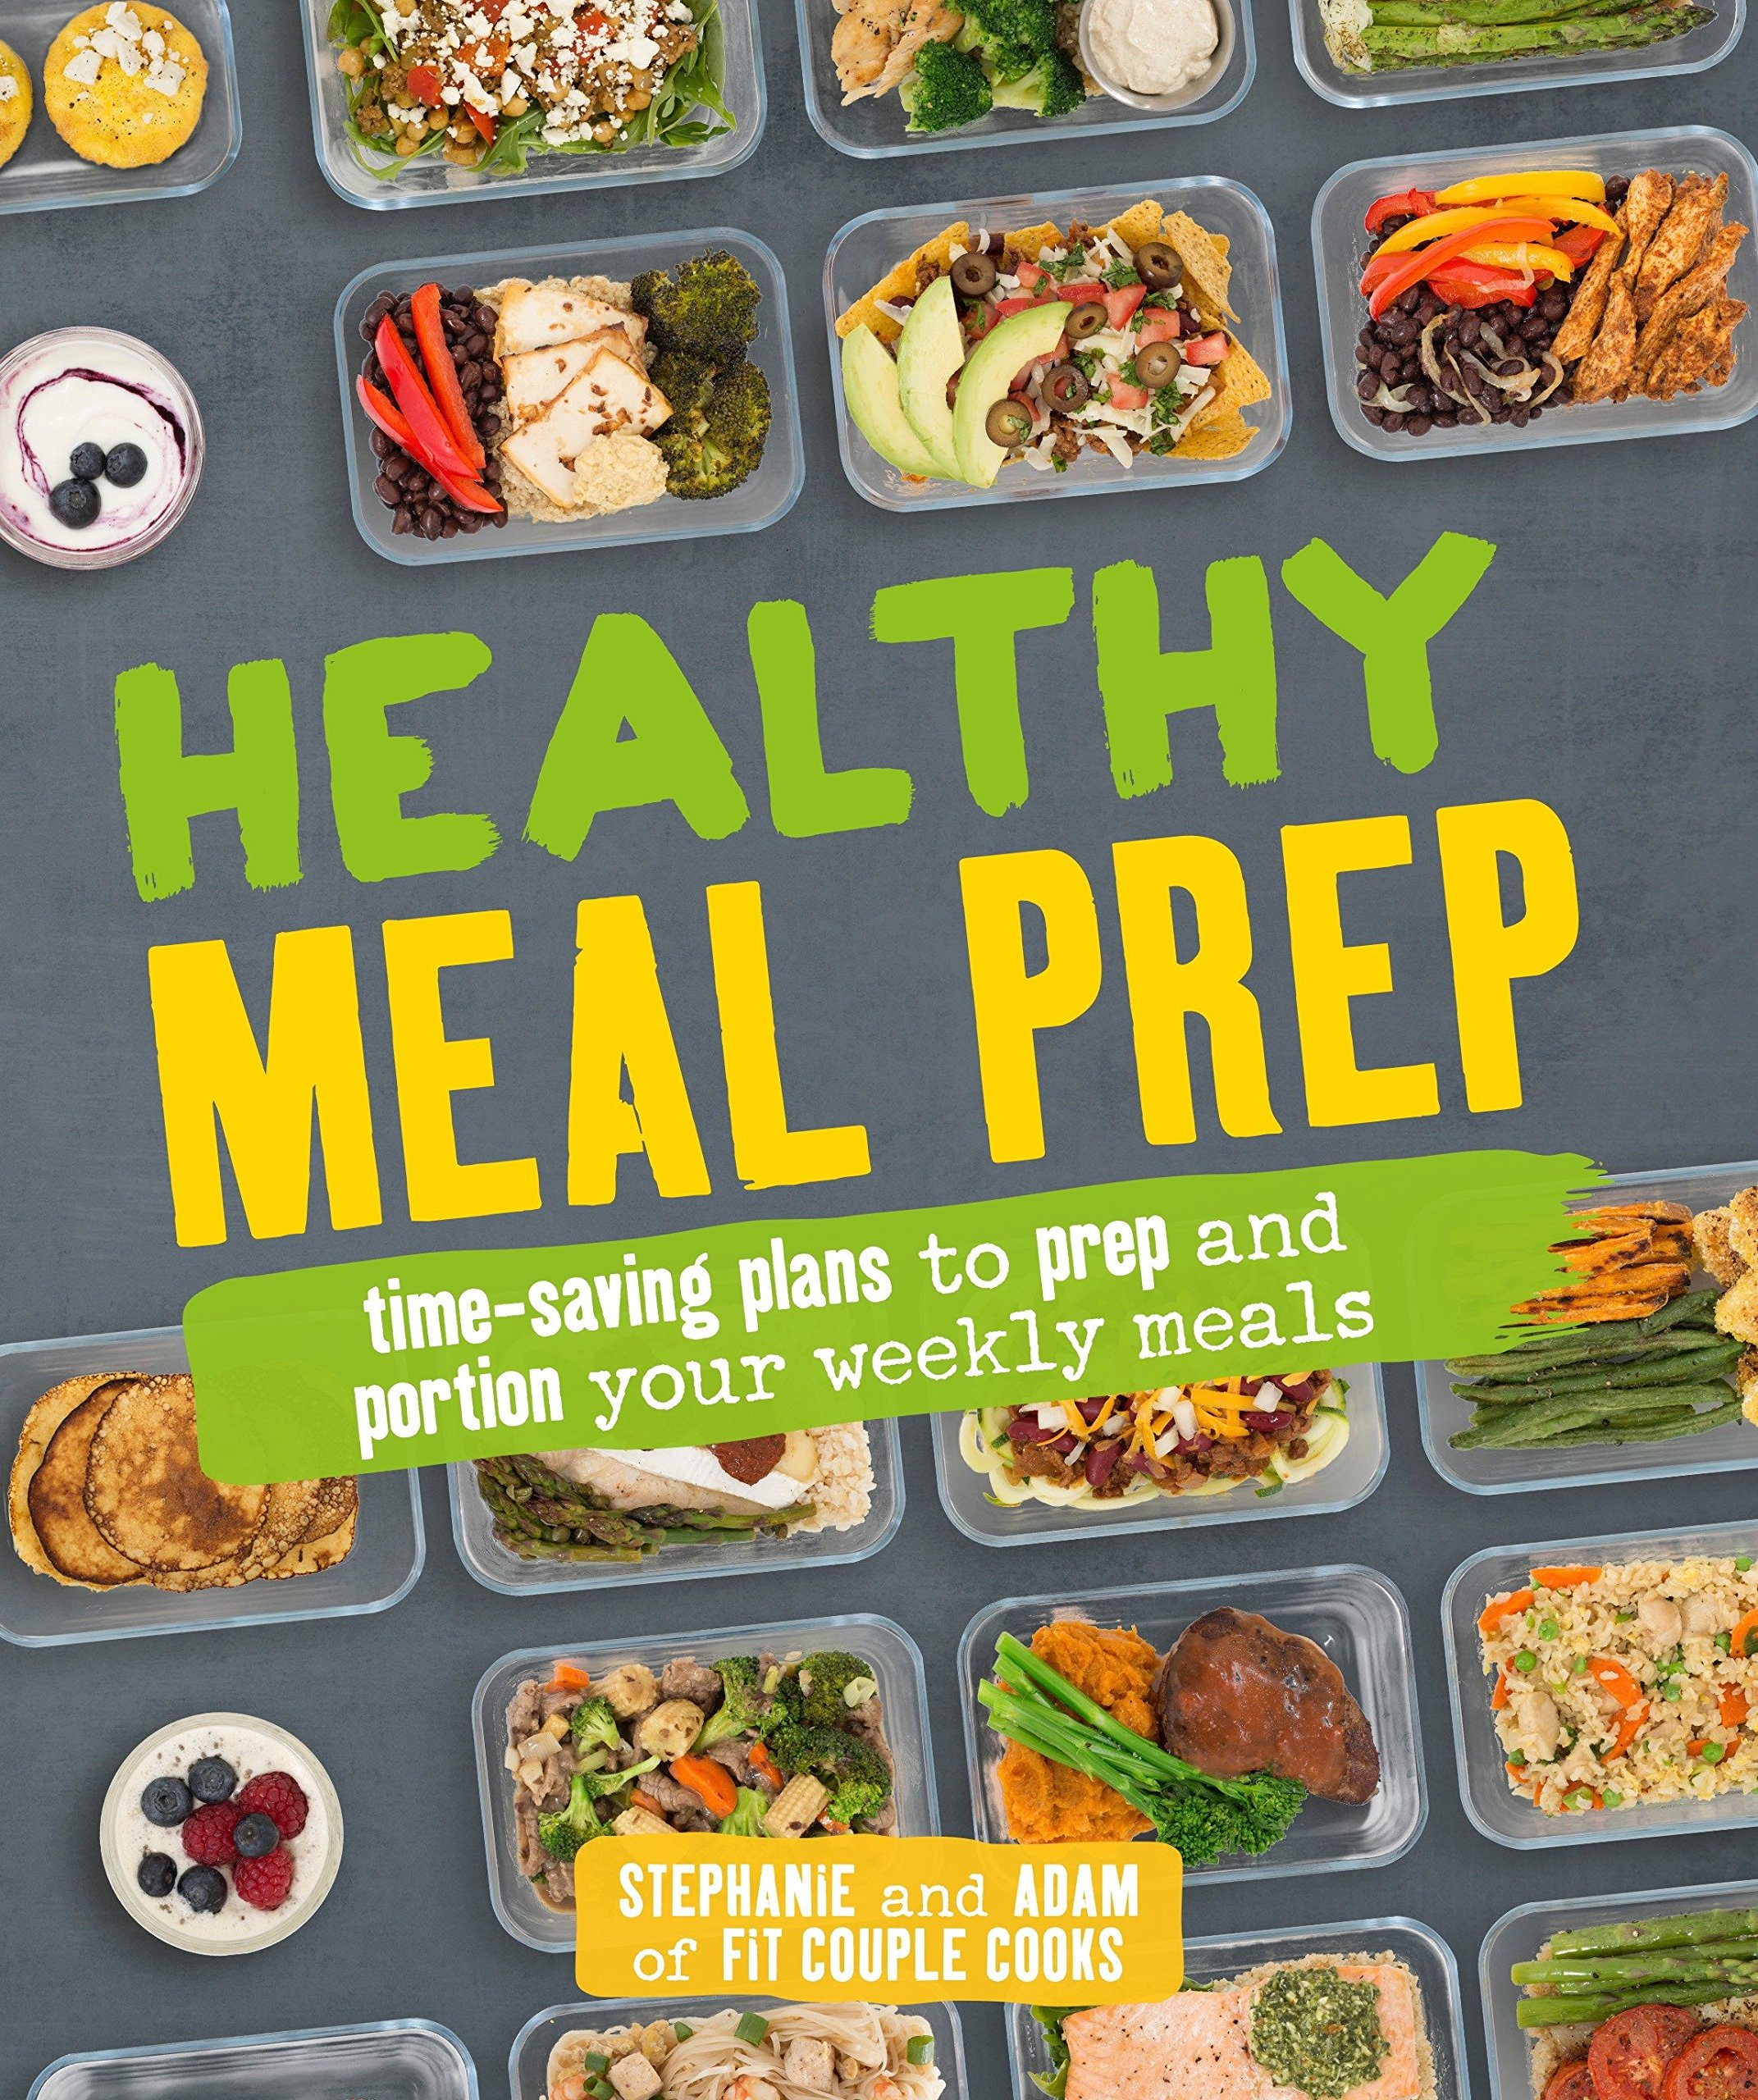 Healthy Meal Prep: Time-saving plans to prep and portion your weekly meals pdf